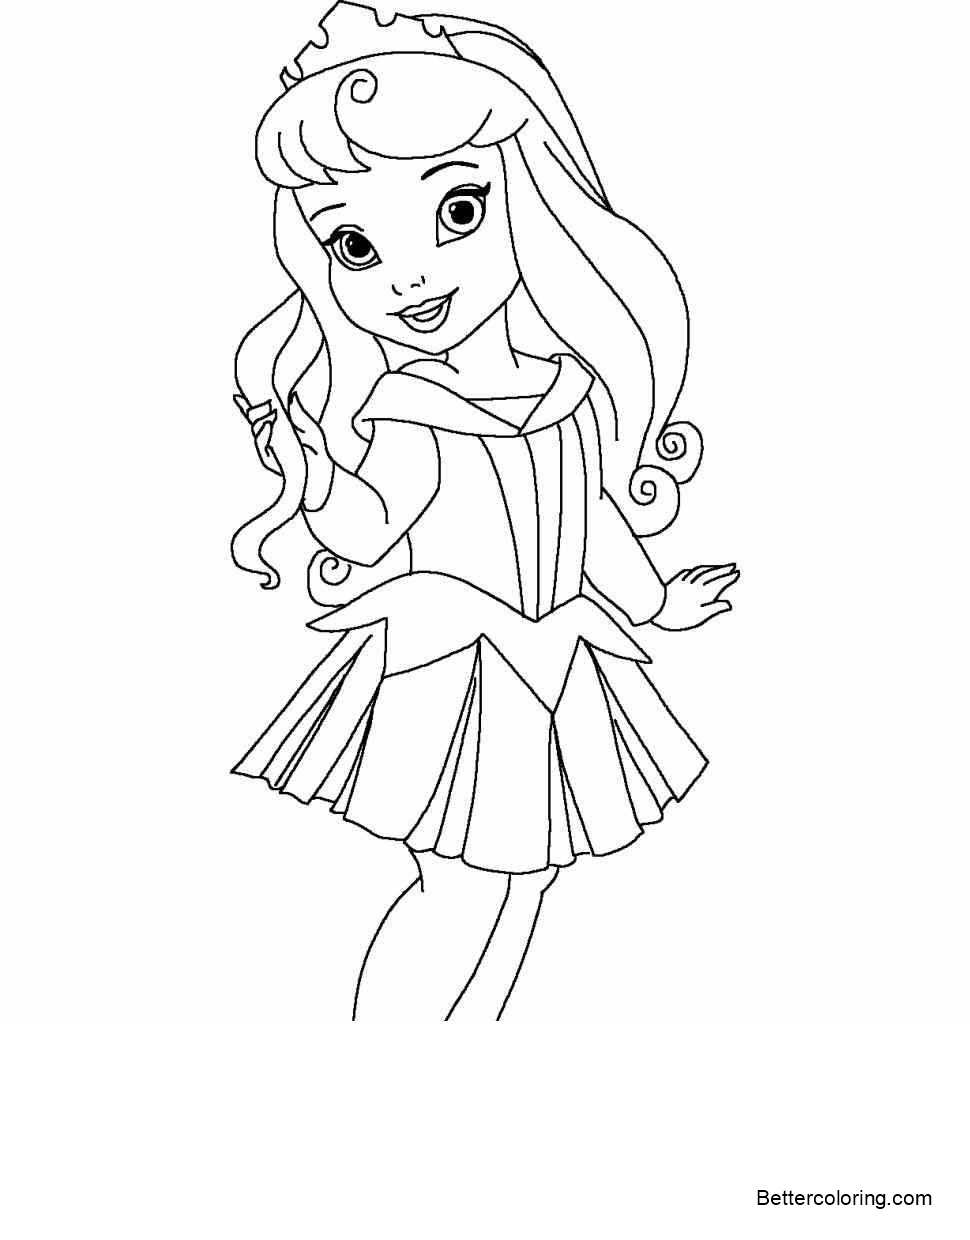 Simple Cute Baby Princess Coloring Pages Free Printable